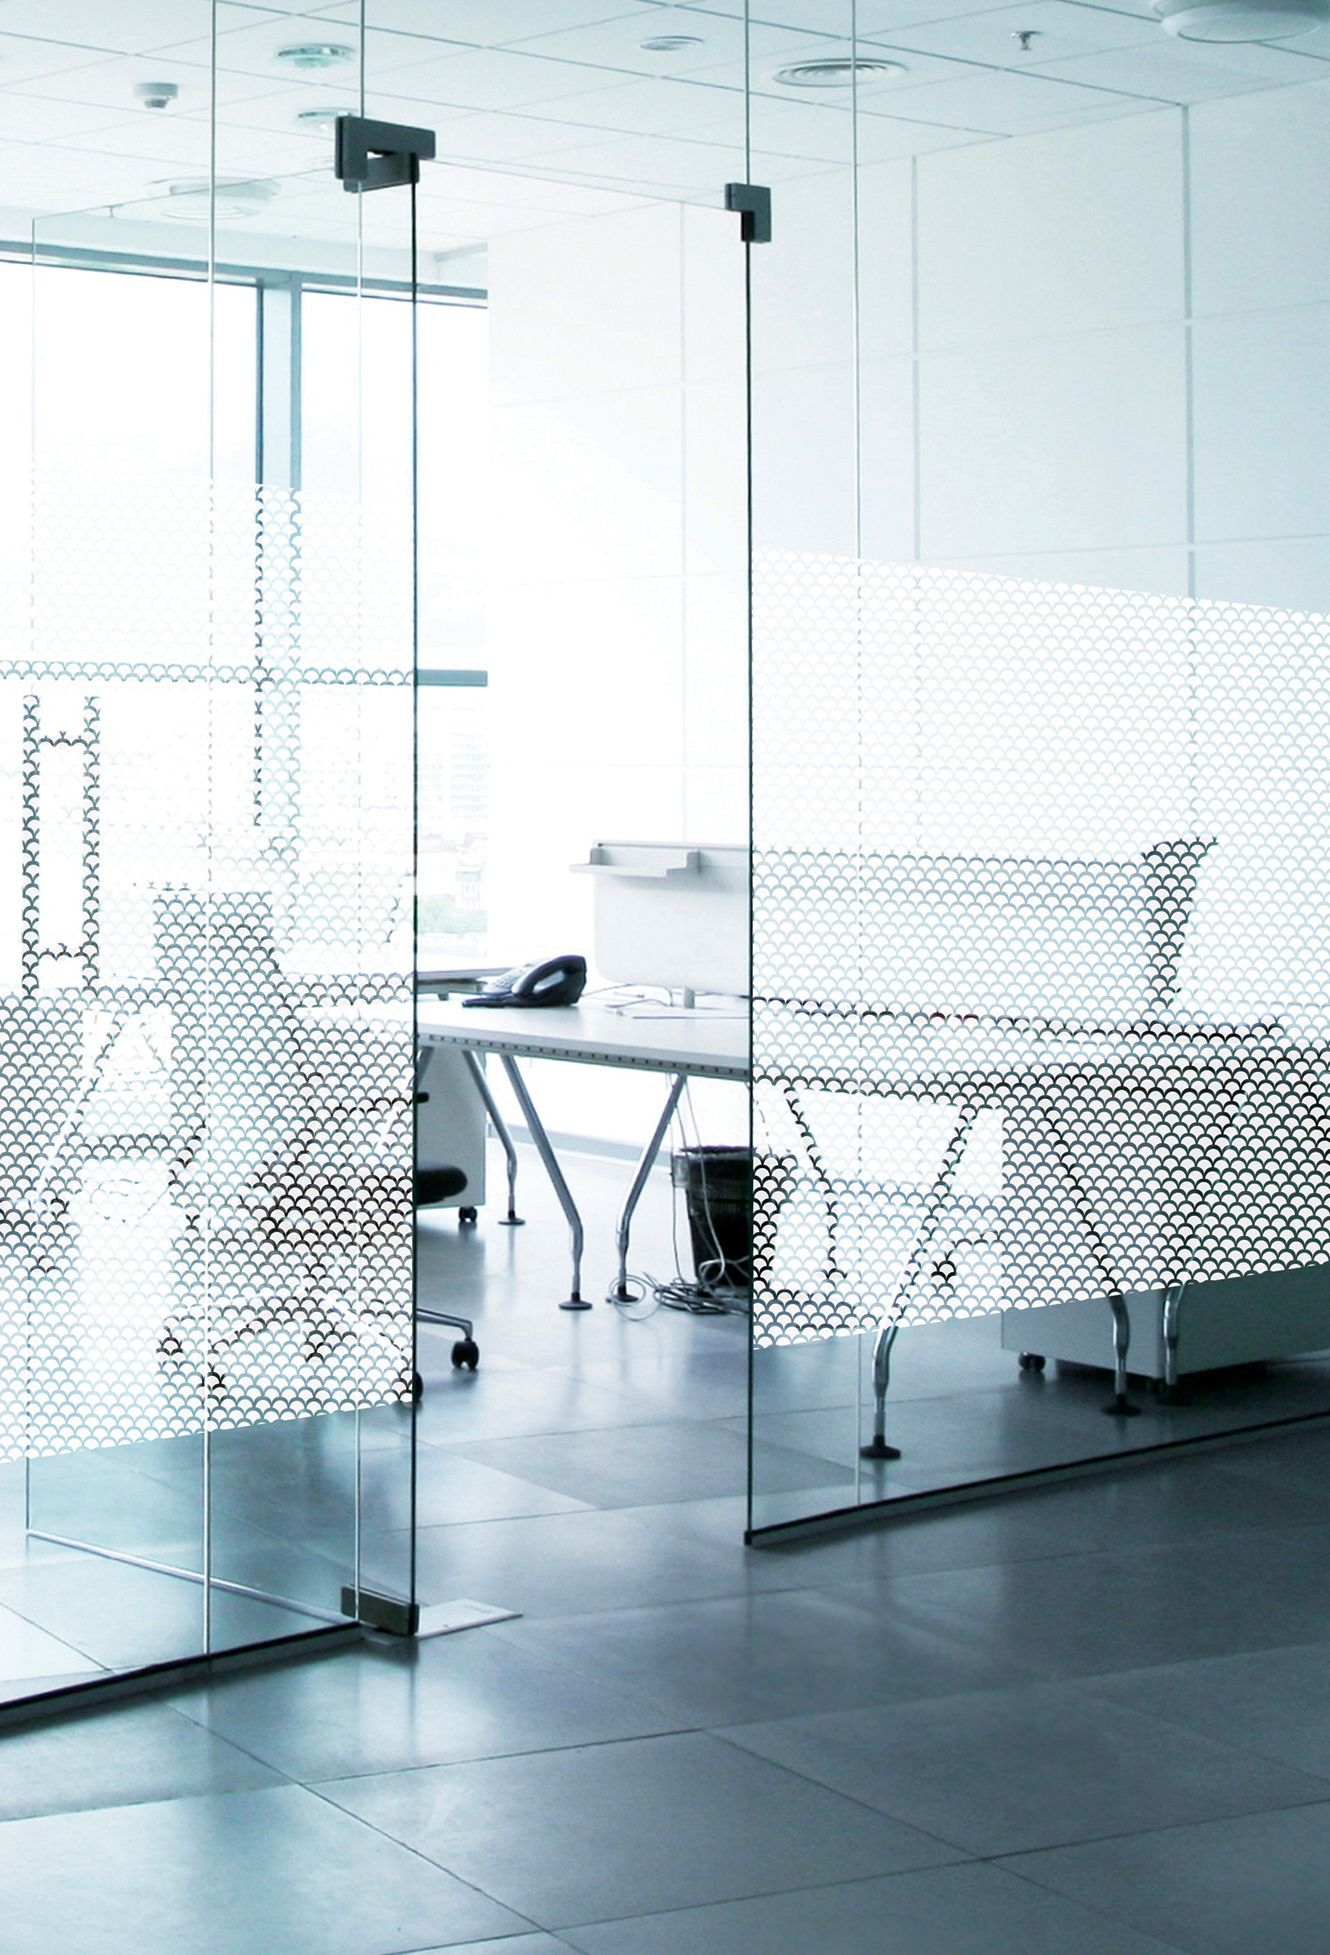 This Decorative Window Film Featuring A Frosted Fish Scale Effect Pattern Allows You To Personalise Your Windows And Glass Surfaces Adding Cloison Design Film